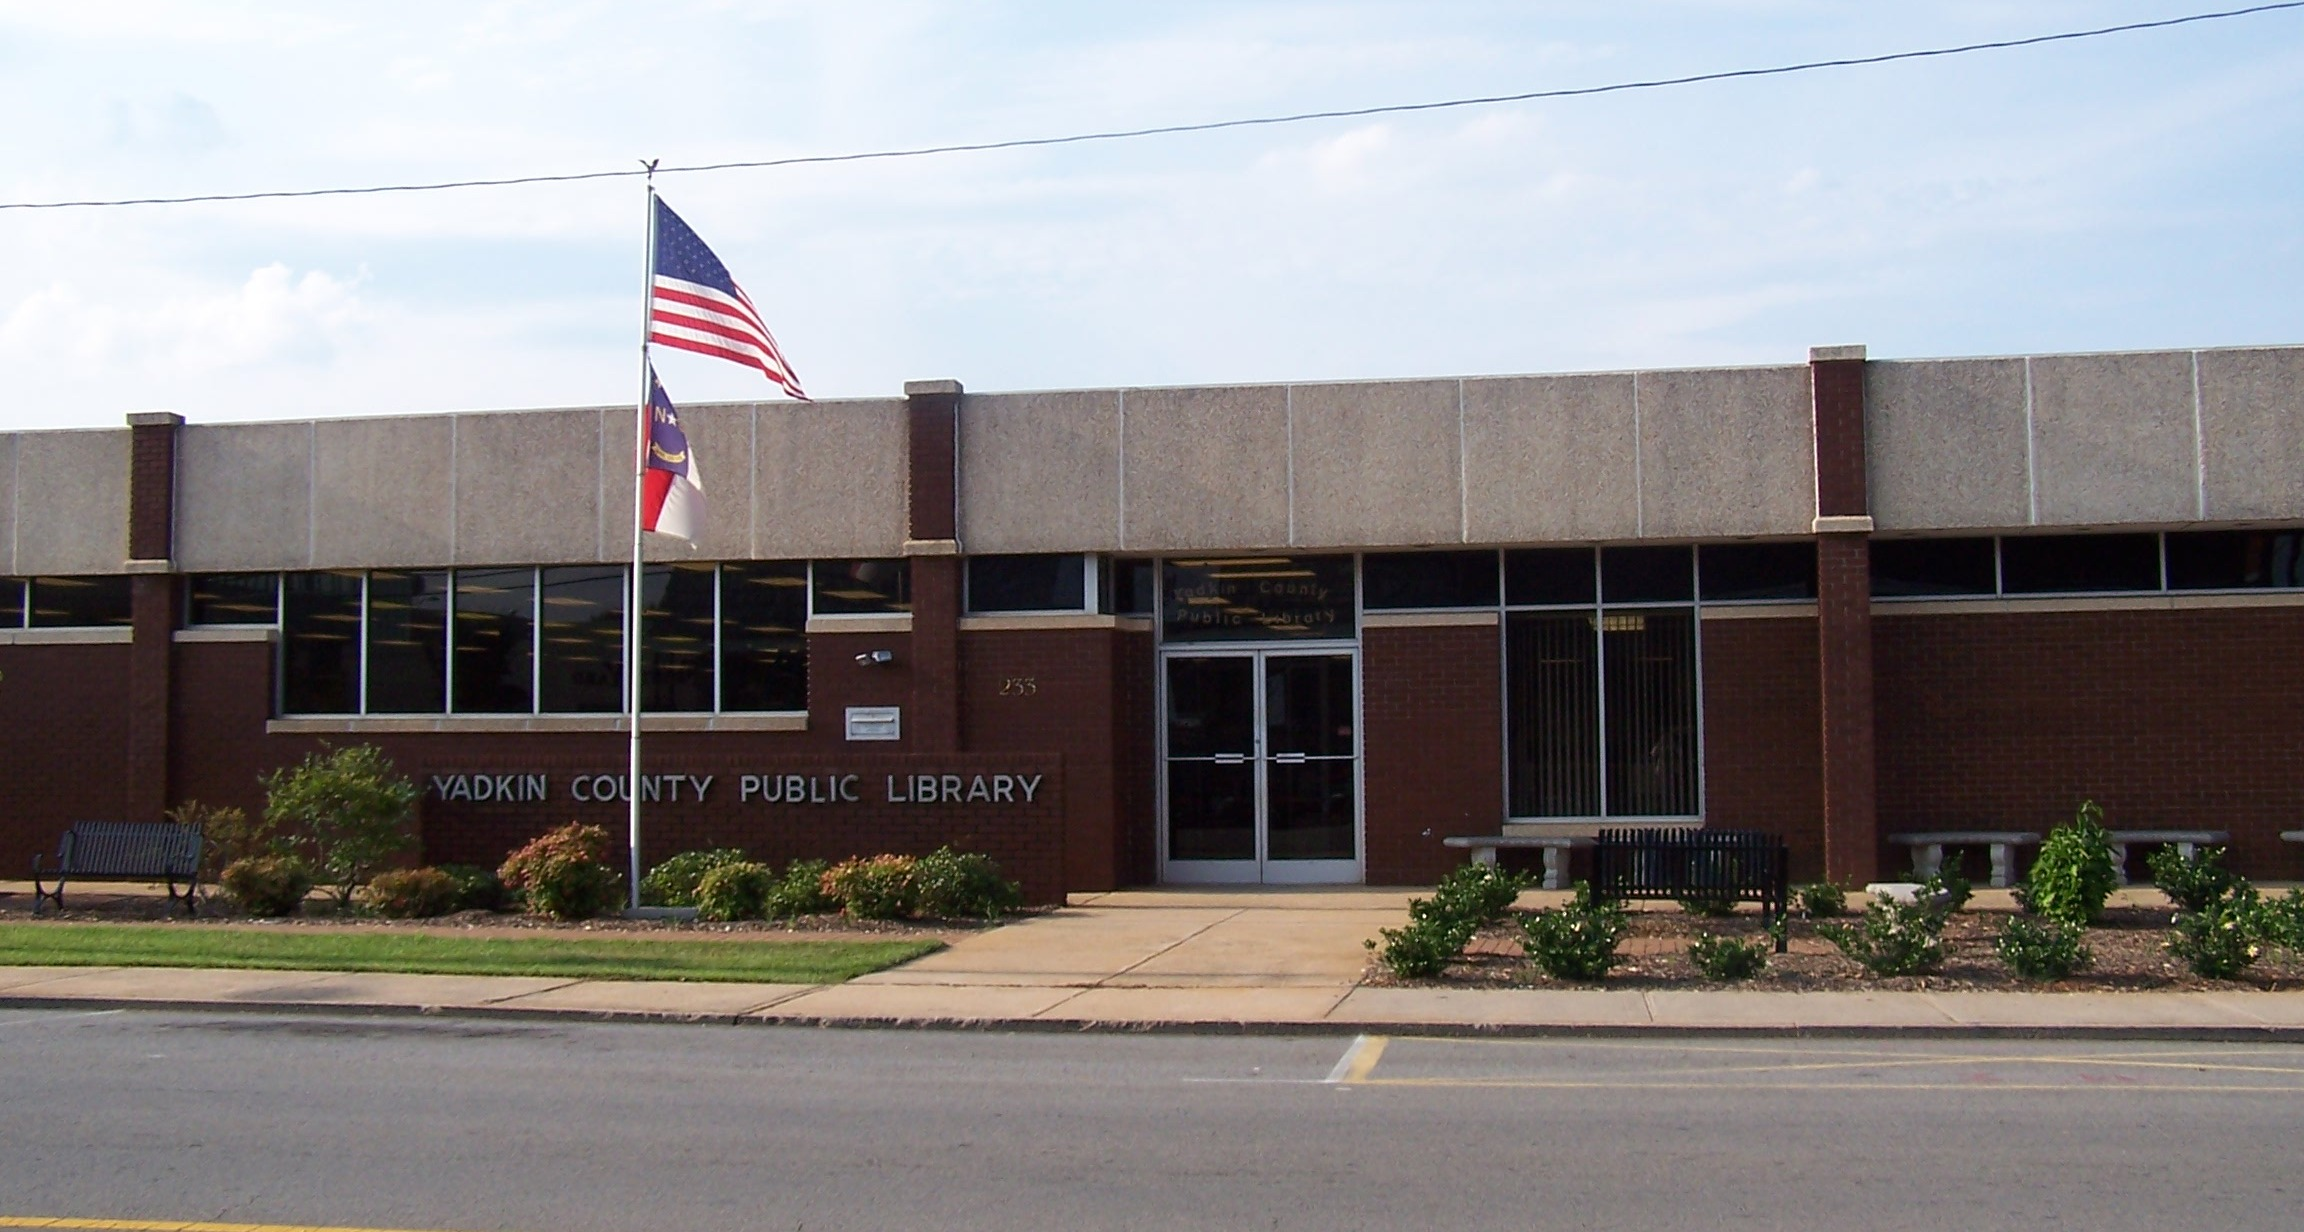 Yadkin County Public Library's picture